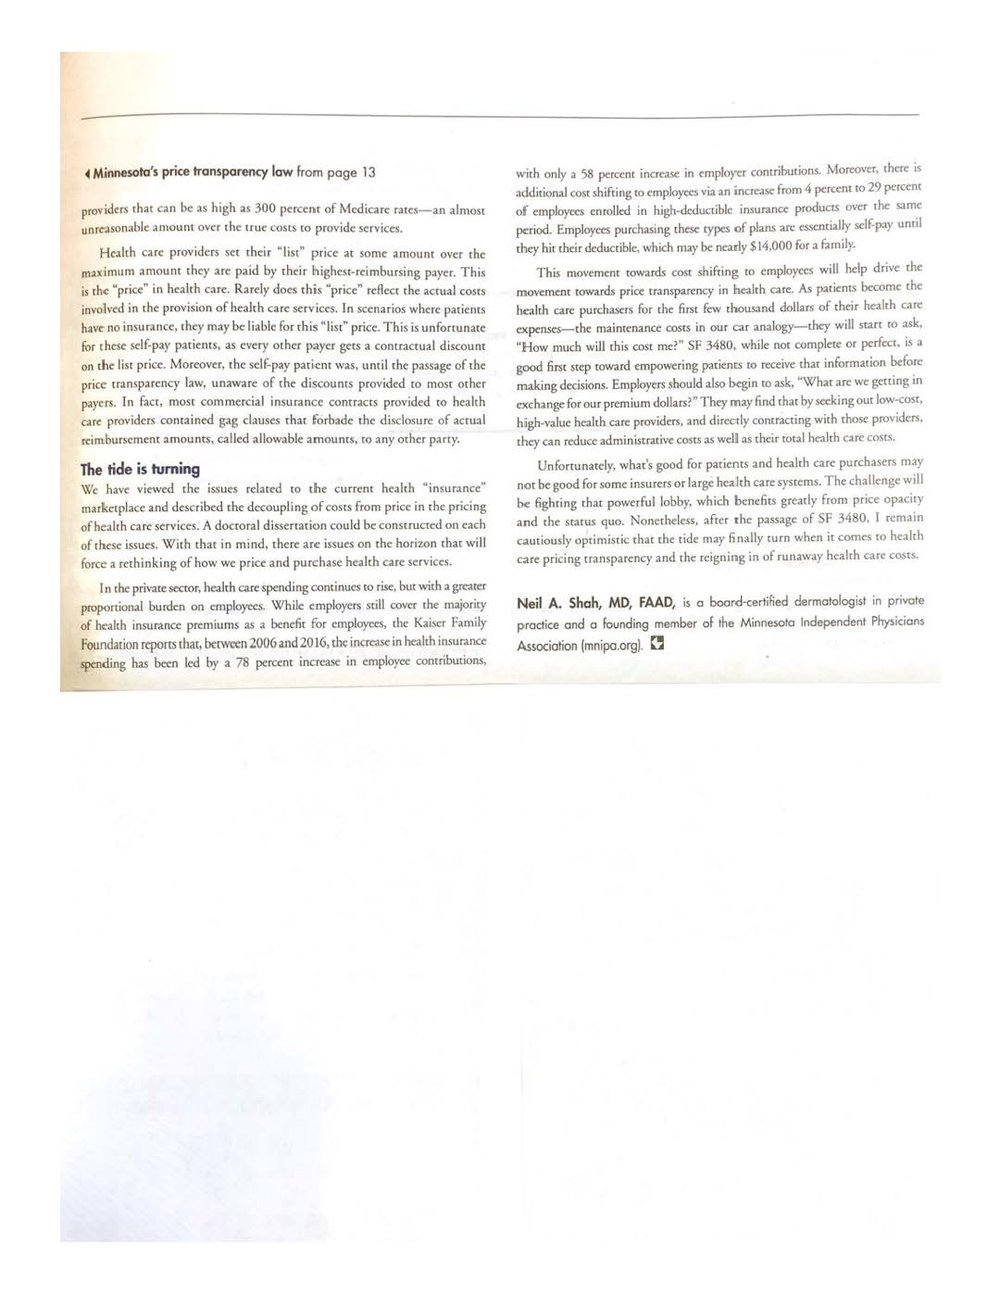 Minnesota's price transparency law article_Page_4.jpg